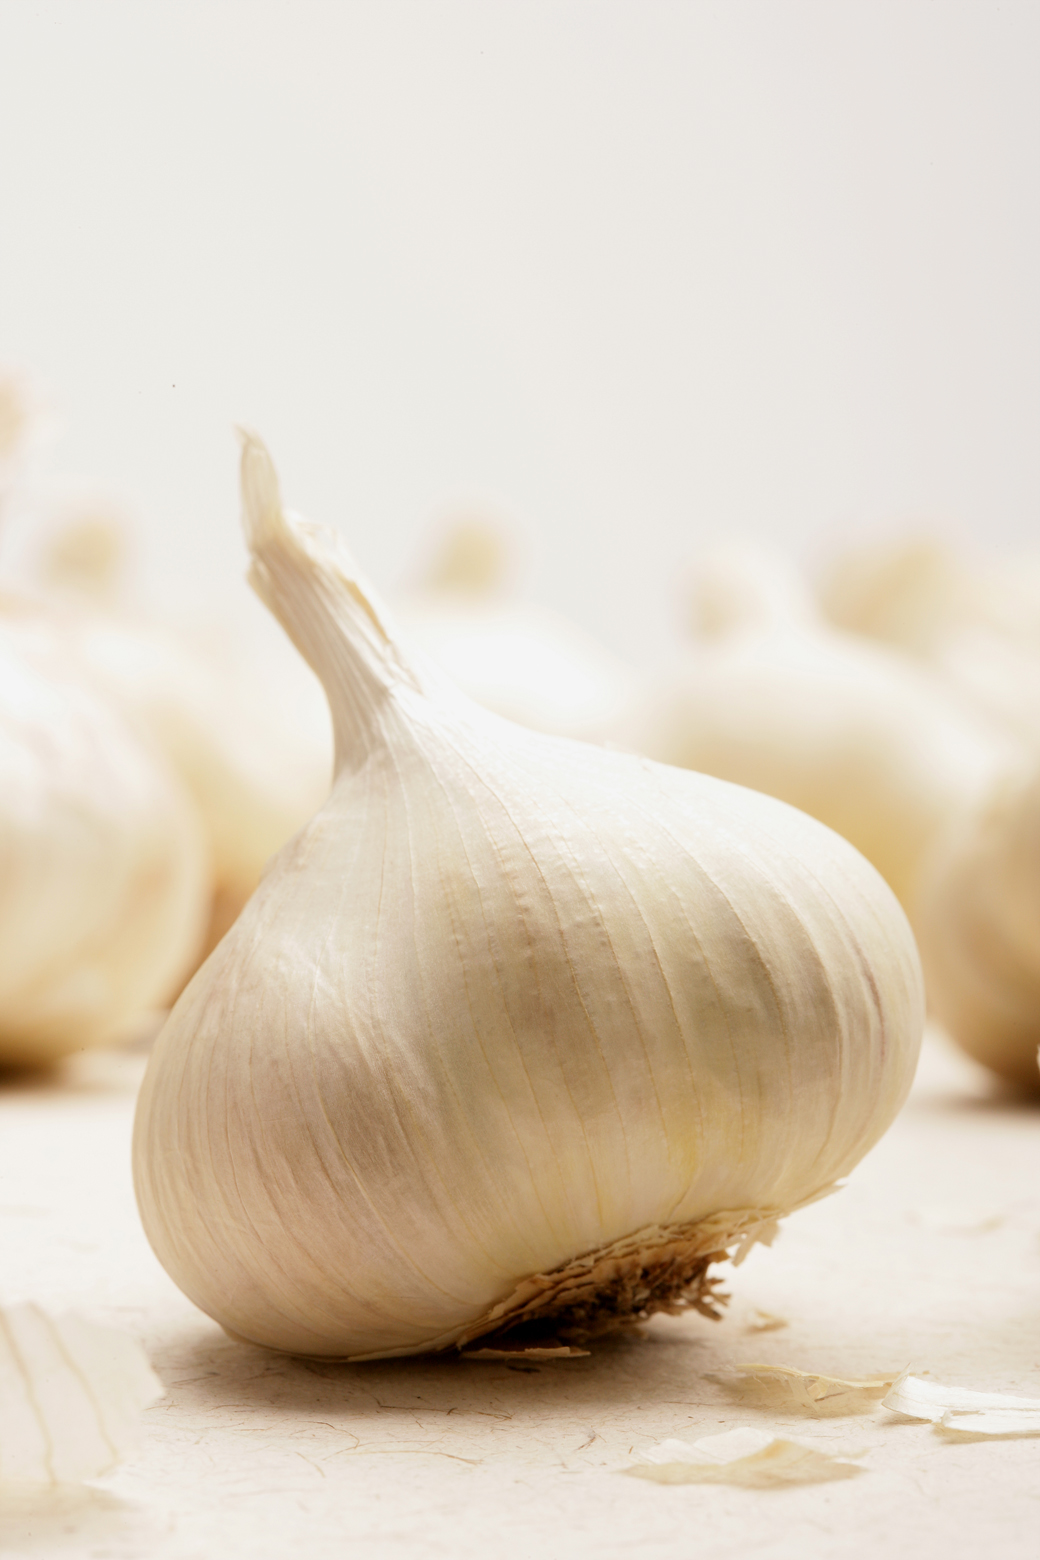 03-garlic fixed.jpg